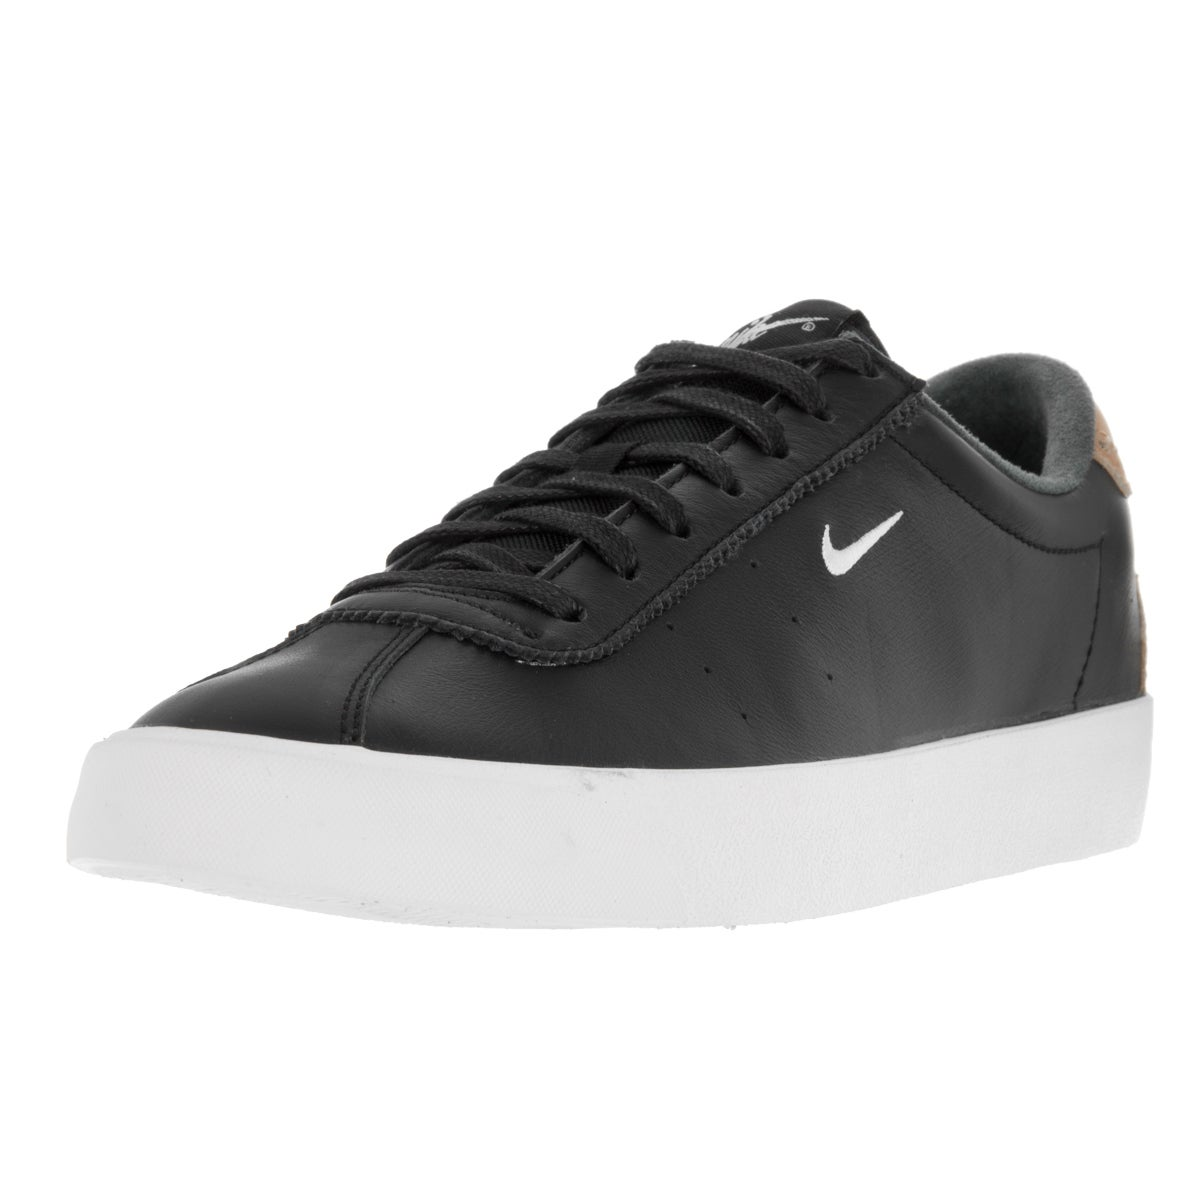 Nike Men's Match Classic Suede Black Leather Tennis Shoe (8)